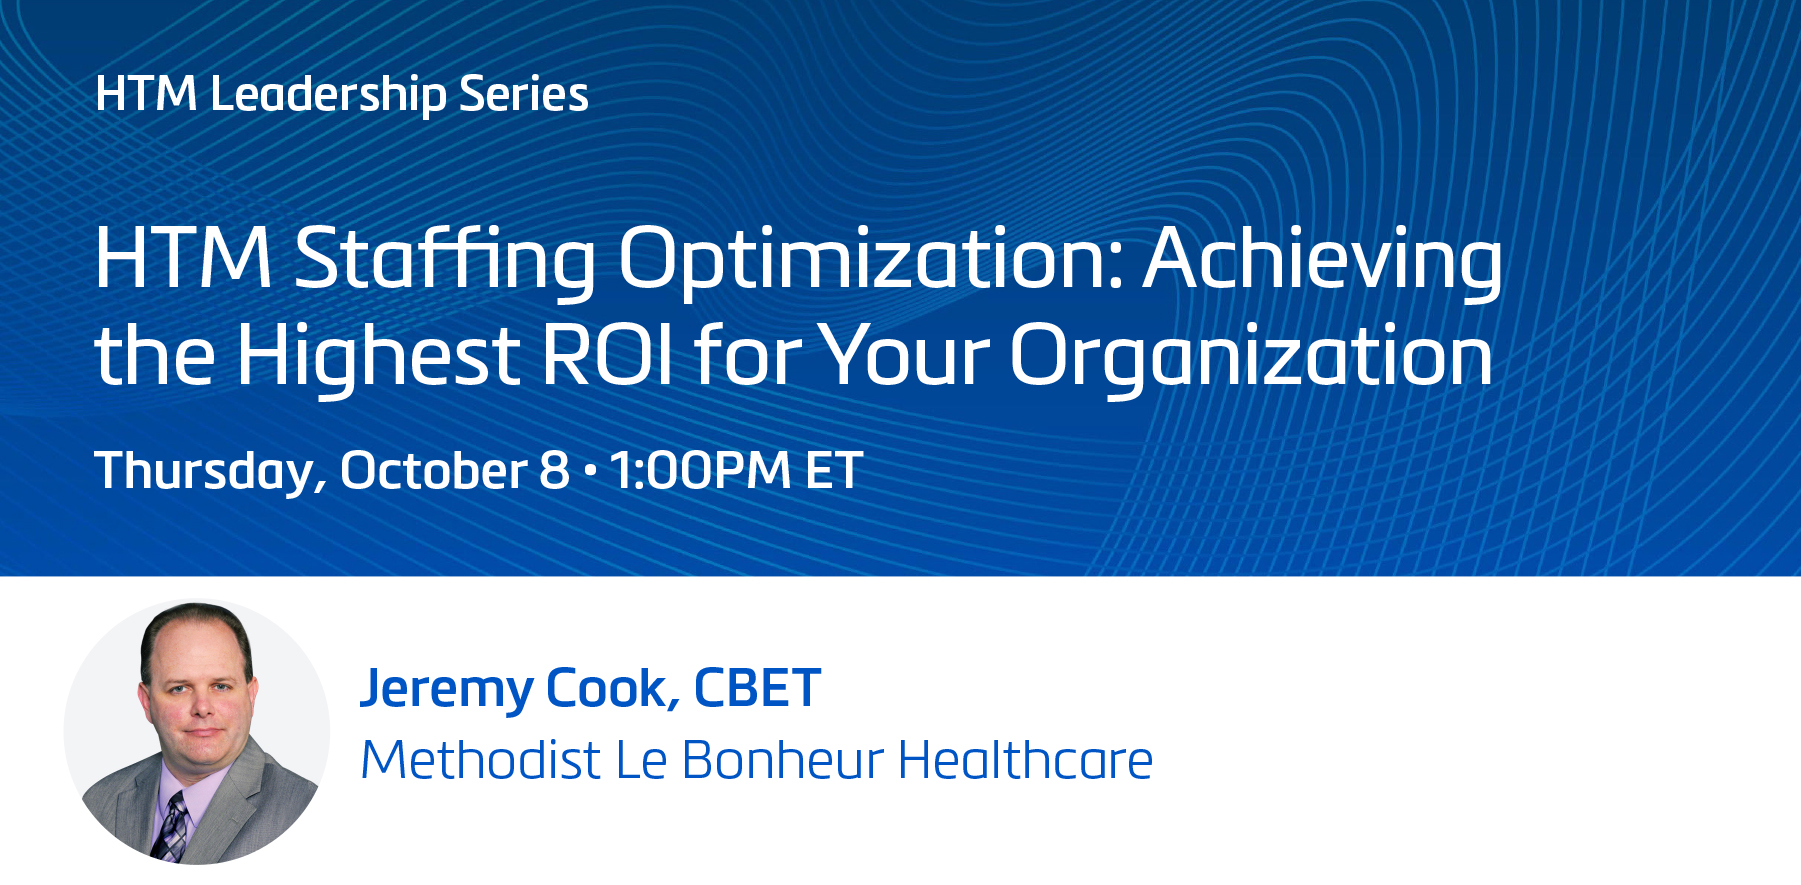 HTM Staffing Optimization: Achieving the Highest ROI for Your Organization